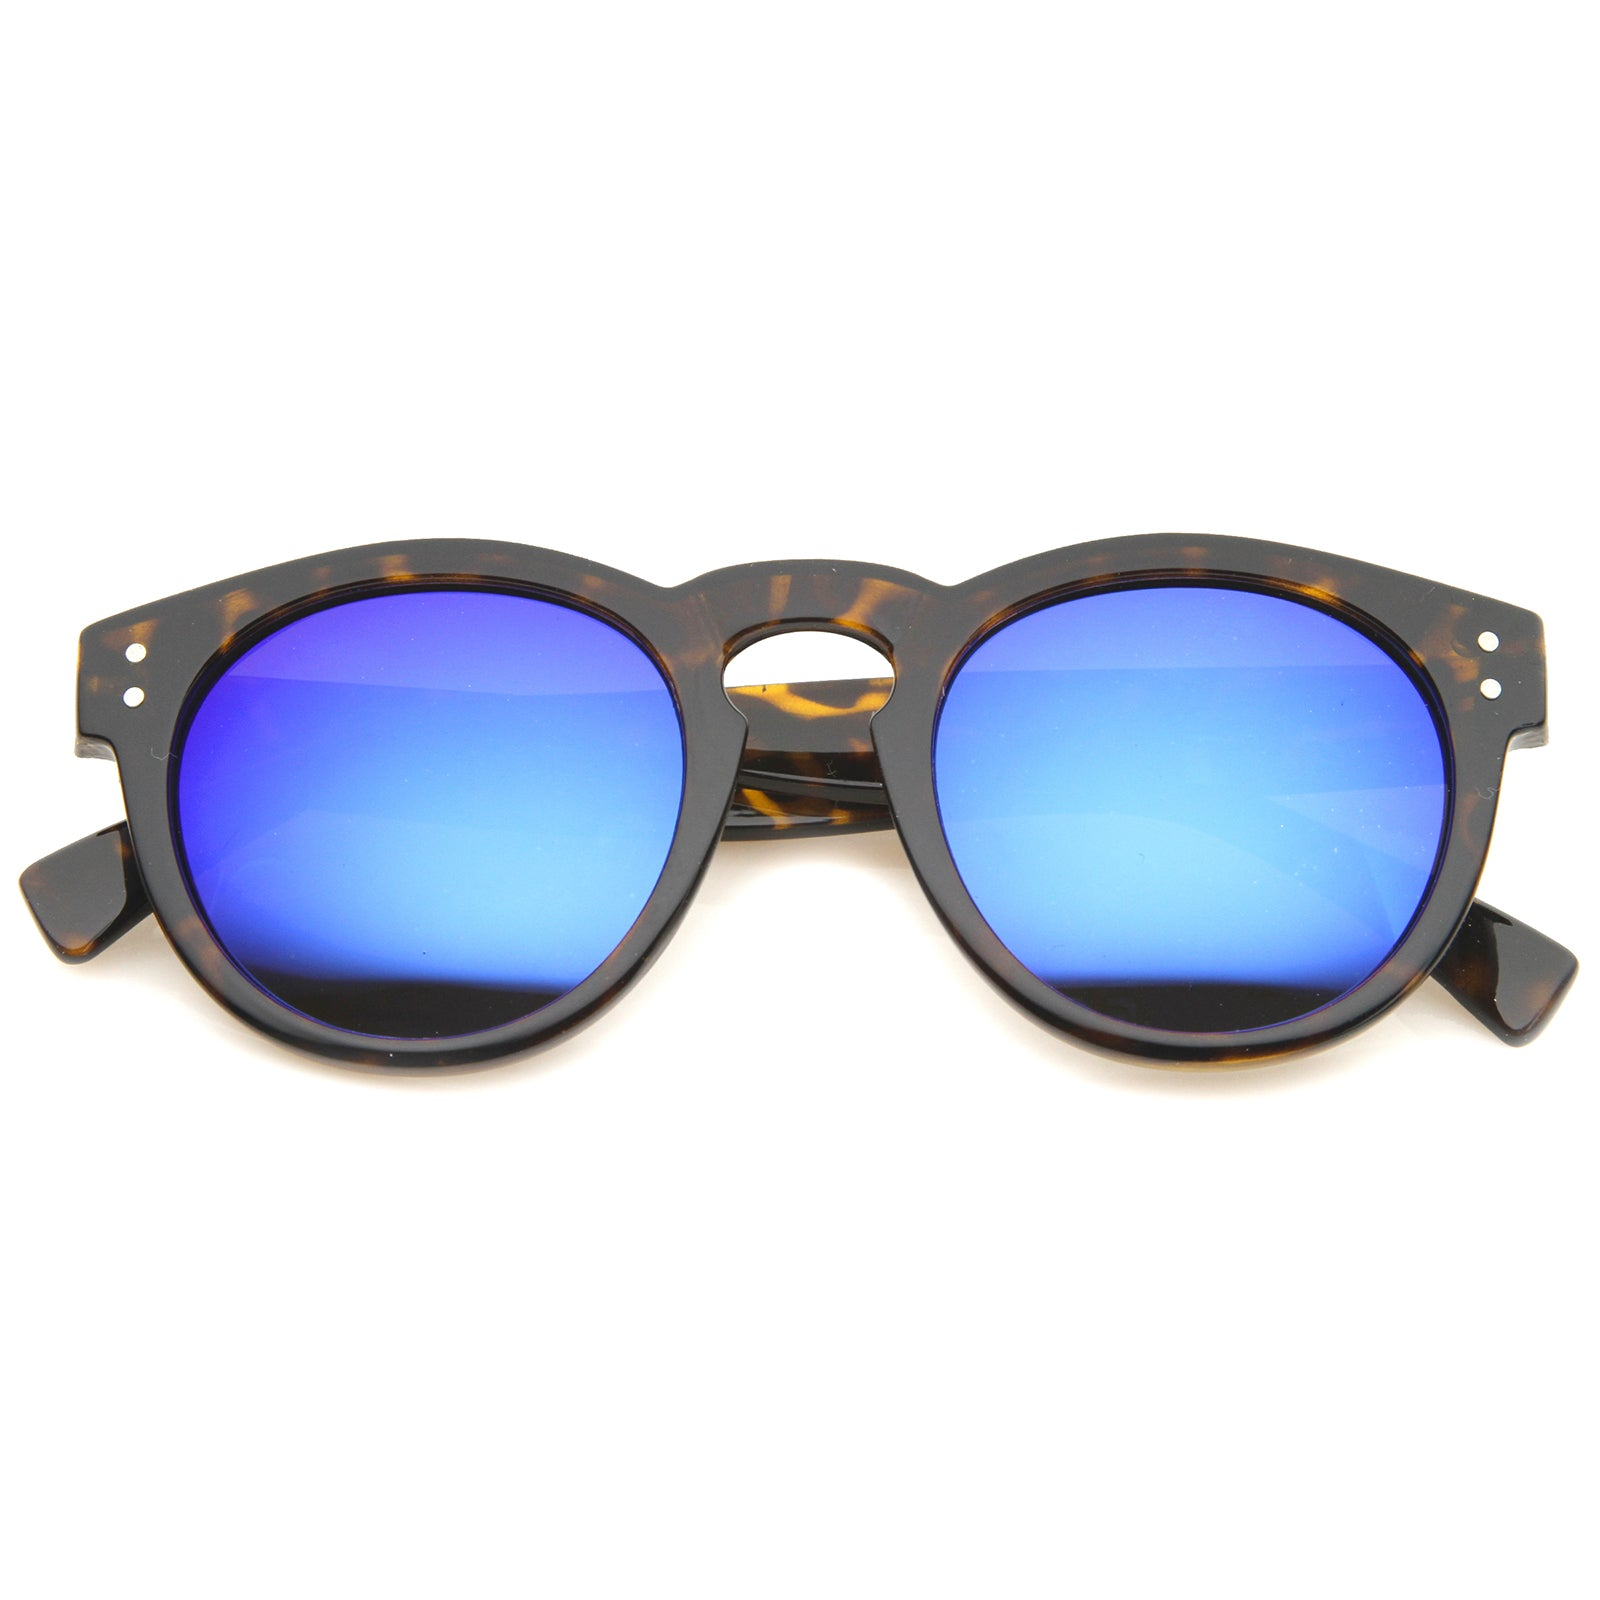 Womens Horn Rimmed Sunglasses With UV400 Protected Mirrored Lens - sunglass.la - 5